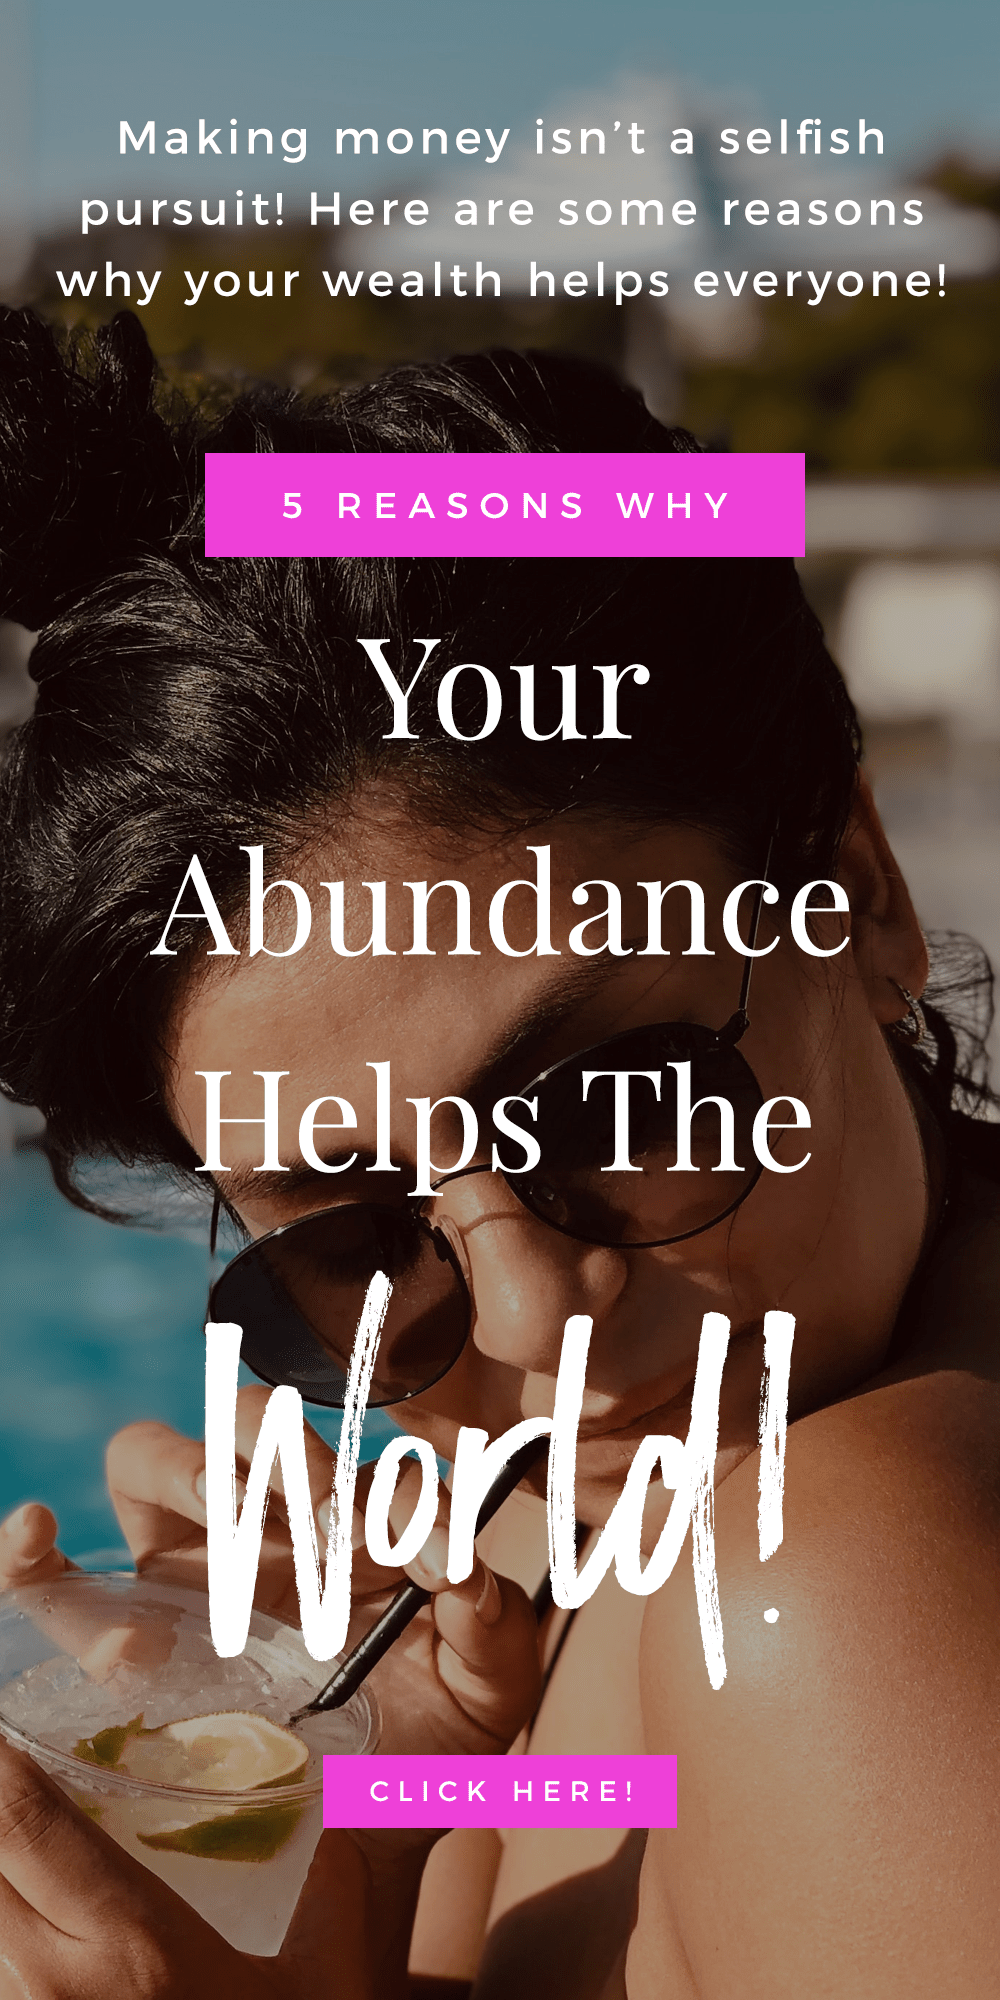 5 Reasons Why Your Abundance Helps The World